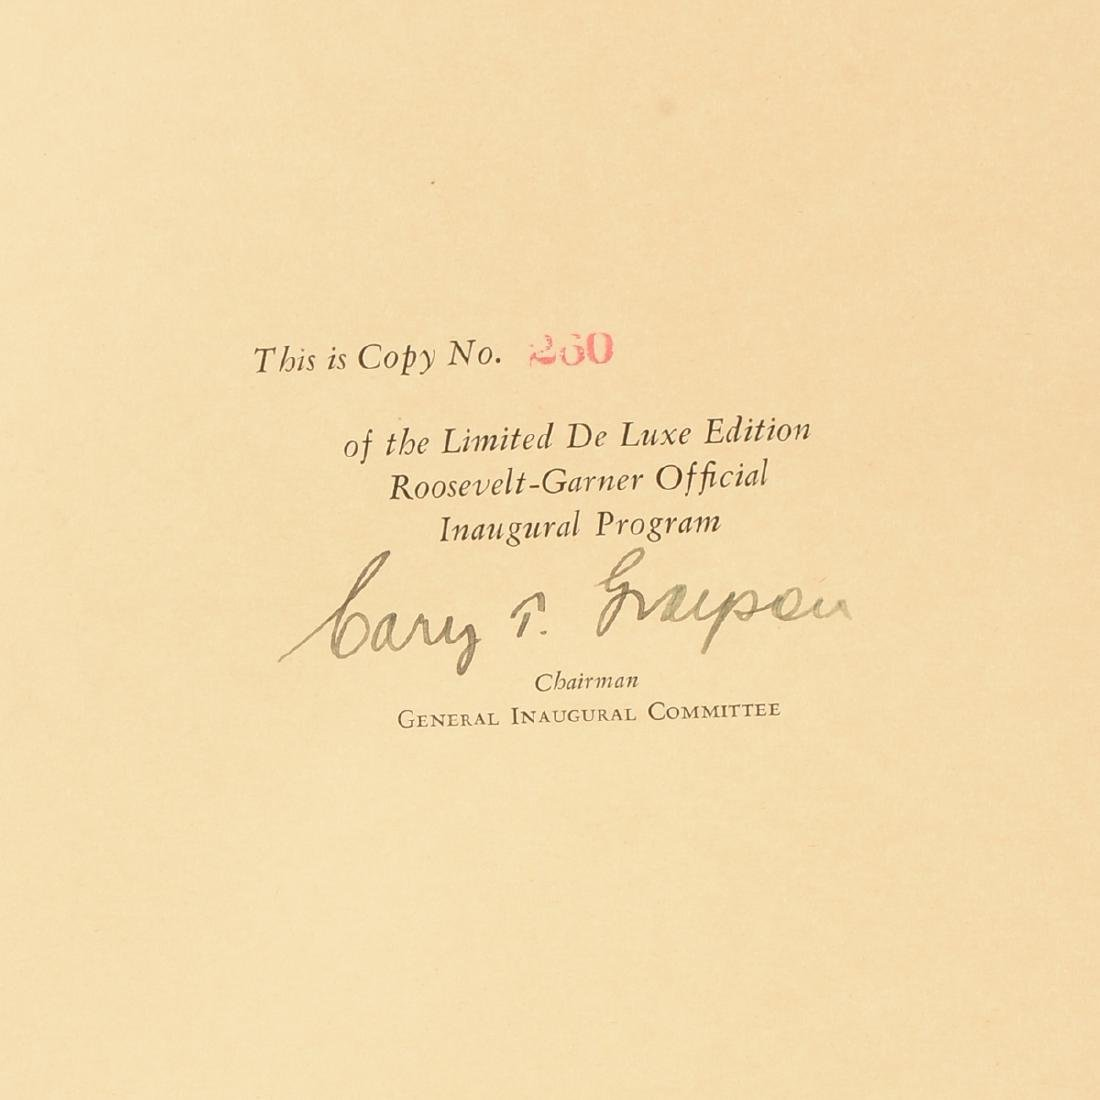 OFFICIAL PROGRAM OF THE INAUGURAL CEREMONIES INDUCTING - 2